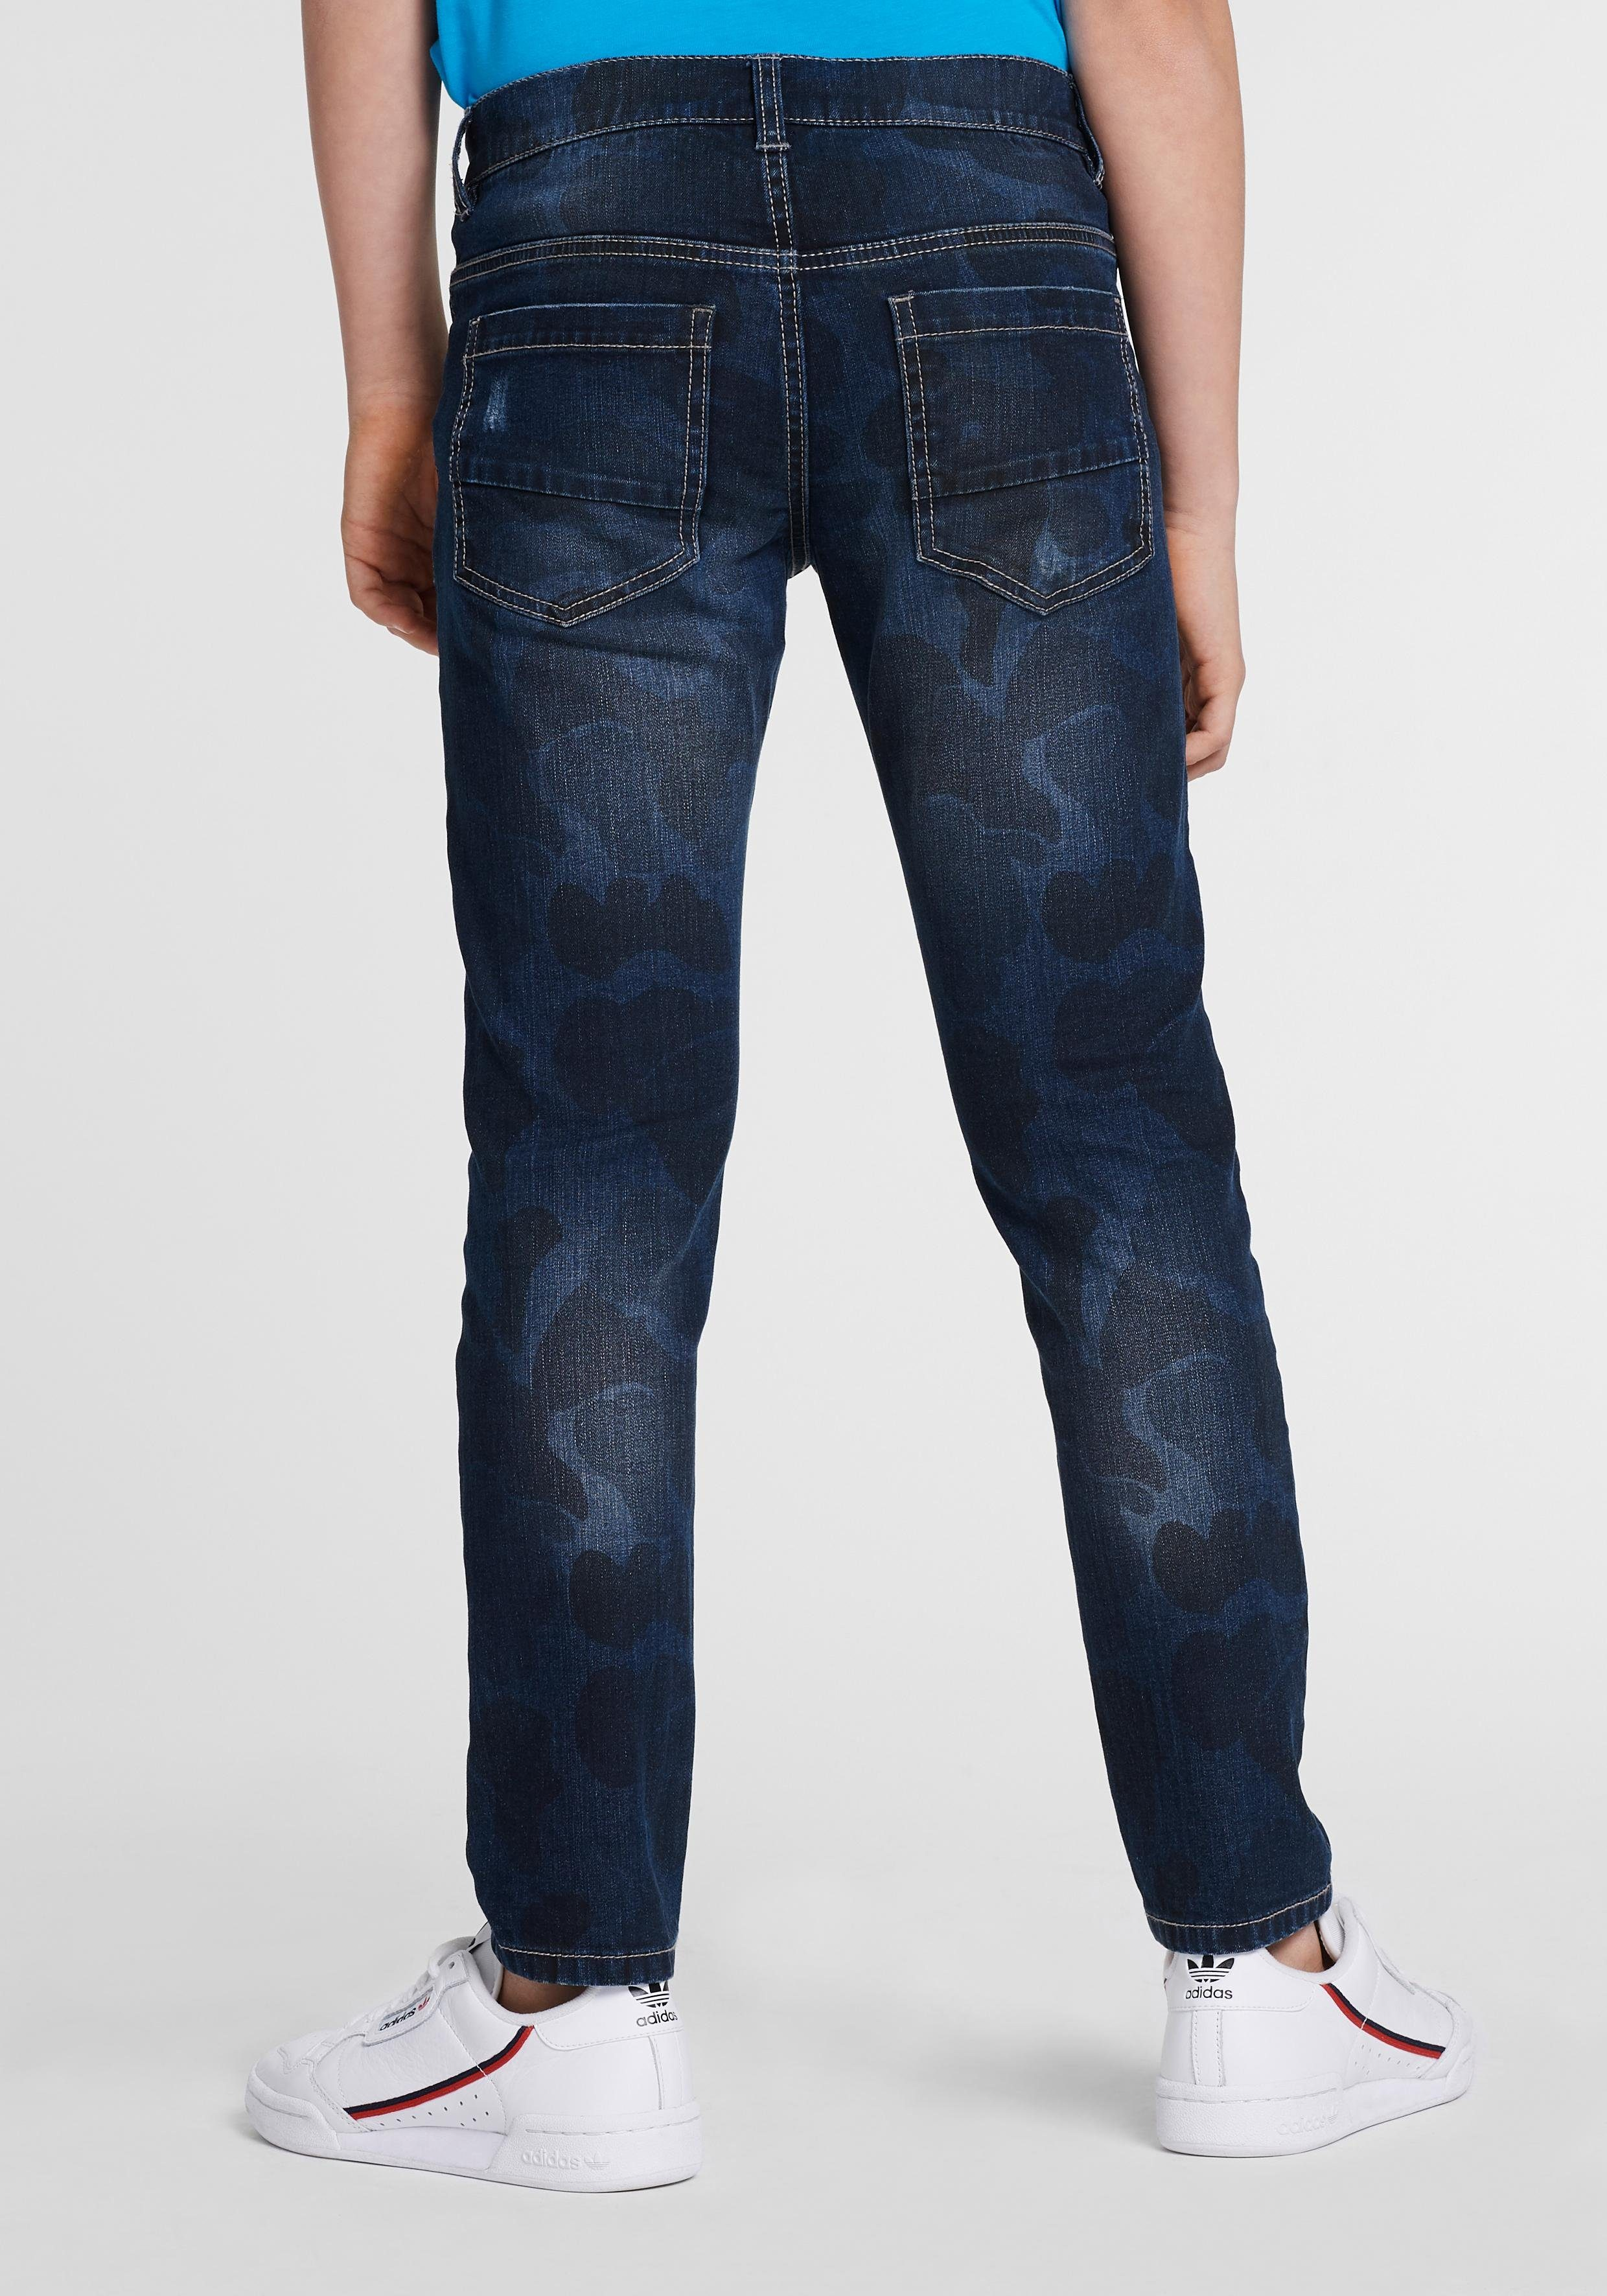 Arizona Stretch Jeans regular fit mit schmalem Bein online kaufen | OTTO